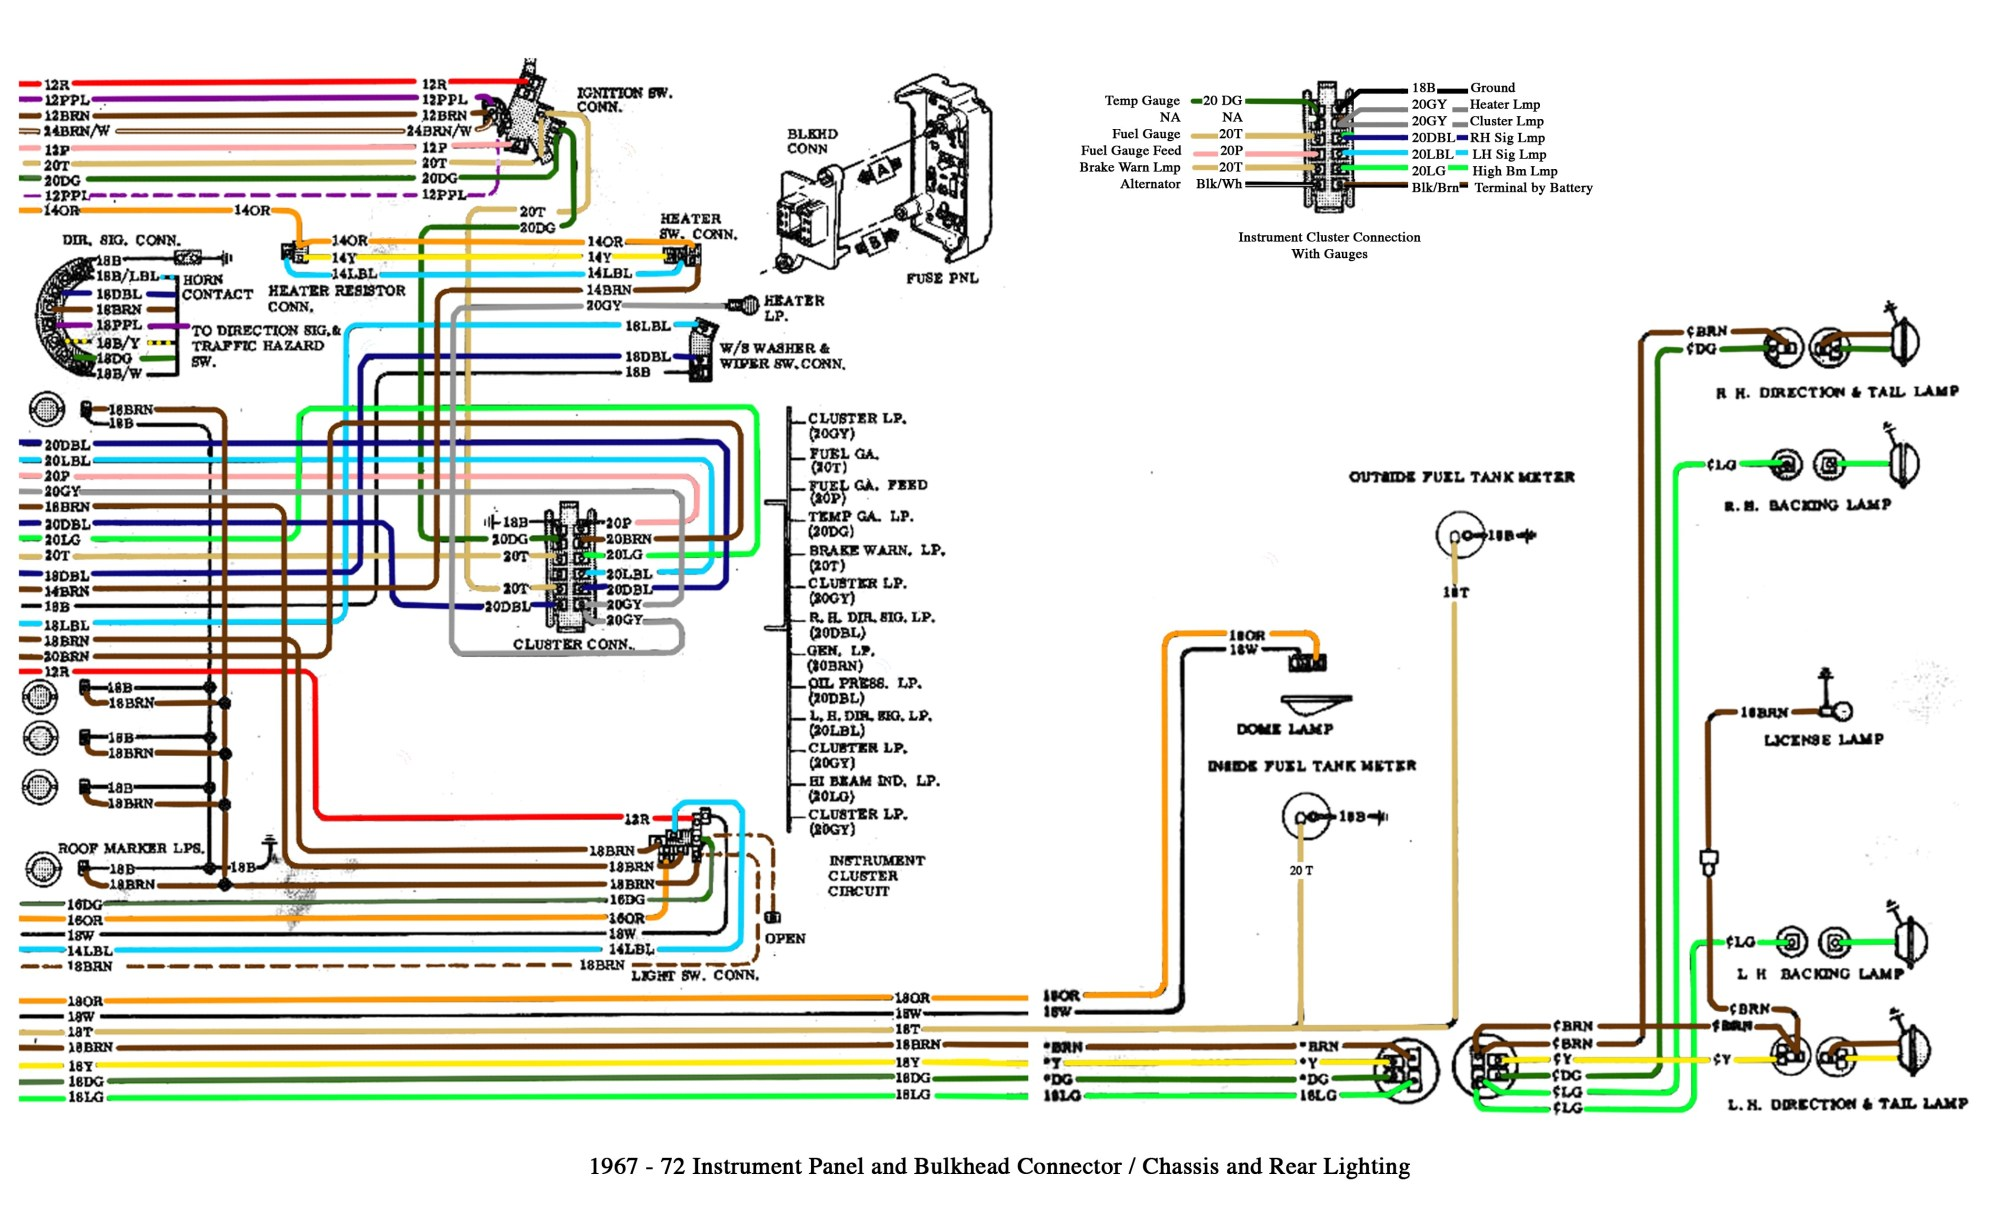 hight resolution of 1978 chevy truck tail light wiring harness wiring diagram sort1978 chevy truck tail light wiring harness